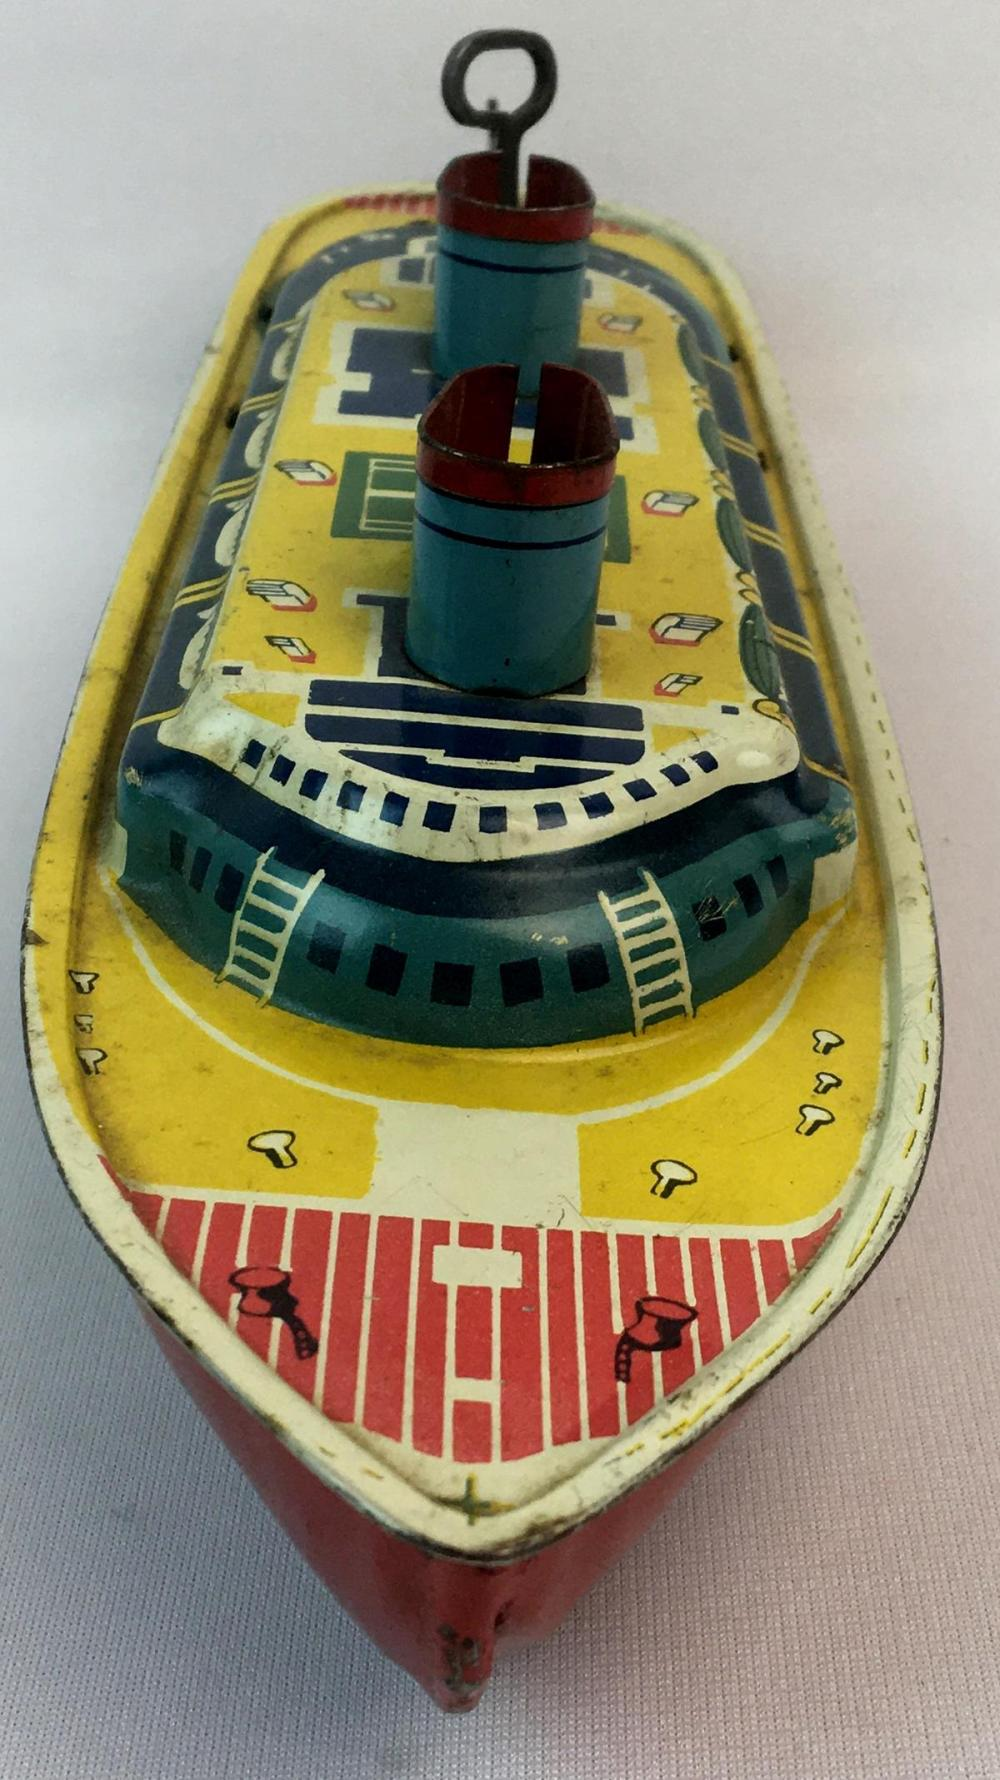 Vintage 1940's Luxury Liner Cruise Ship Wind-Up Tin Litho Toy Boat WORKS